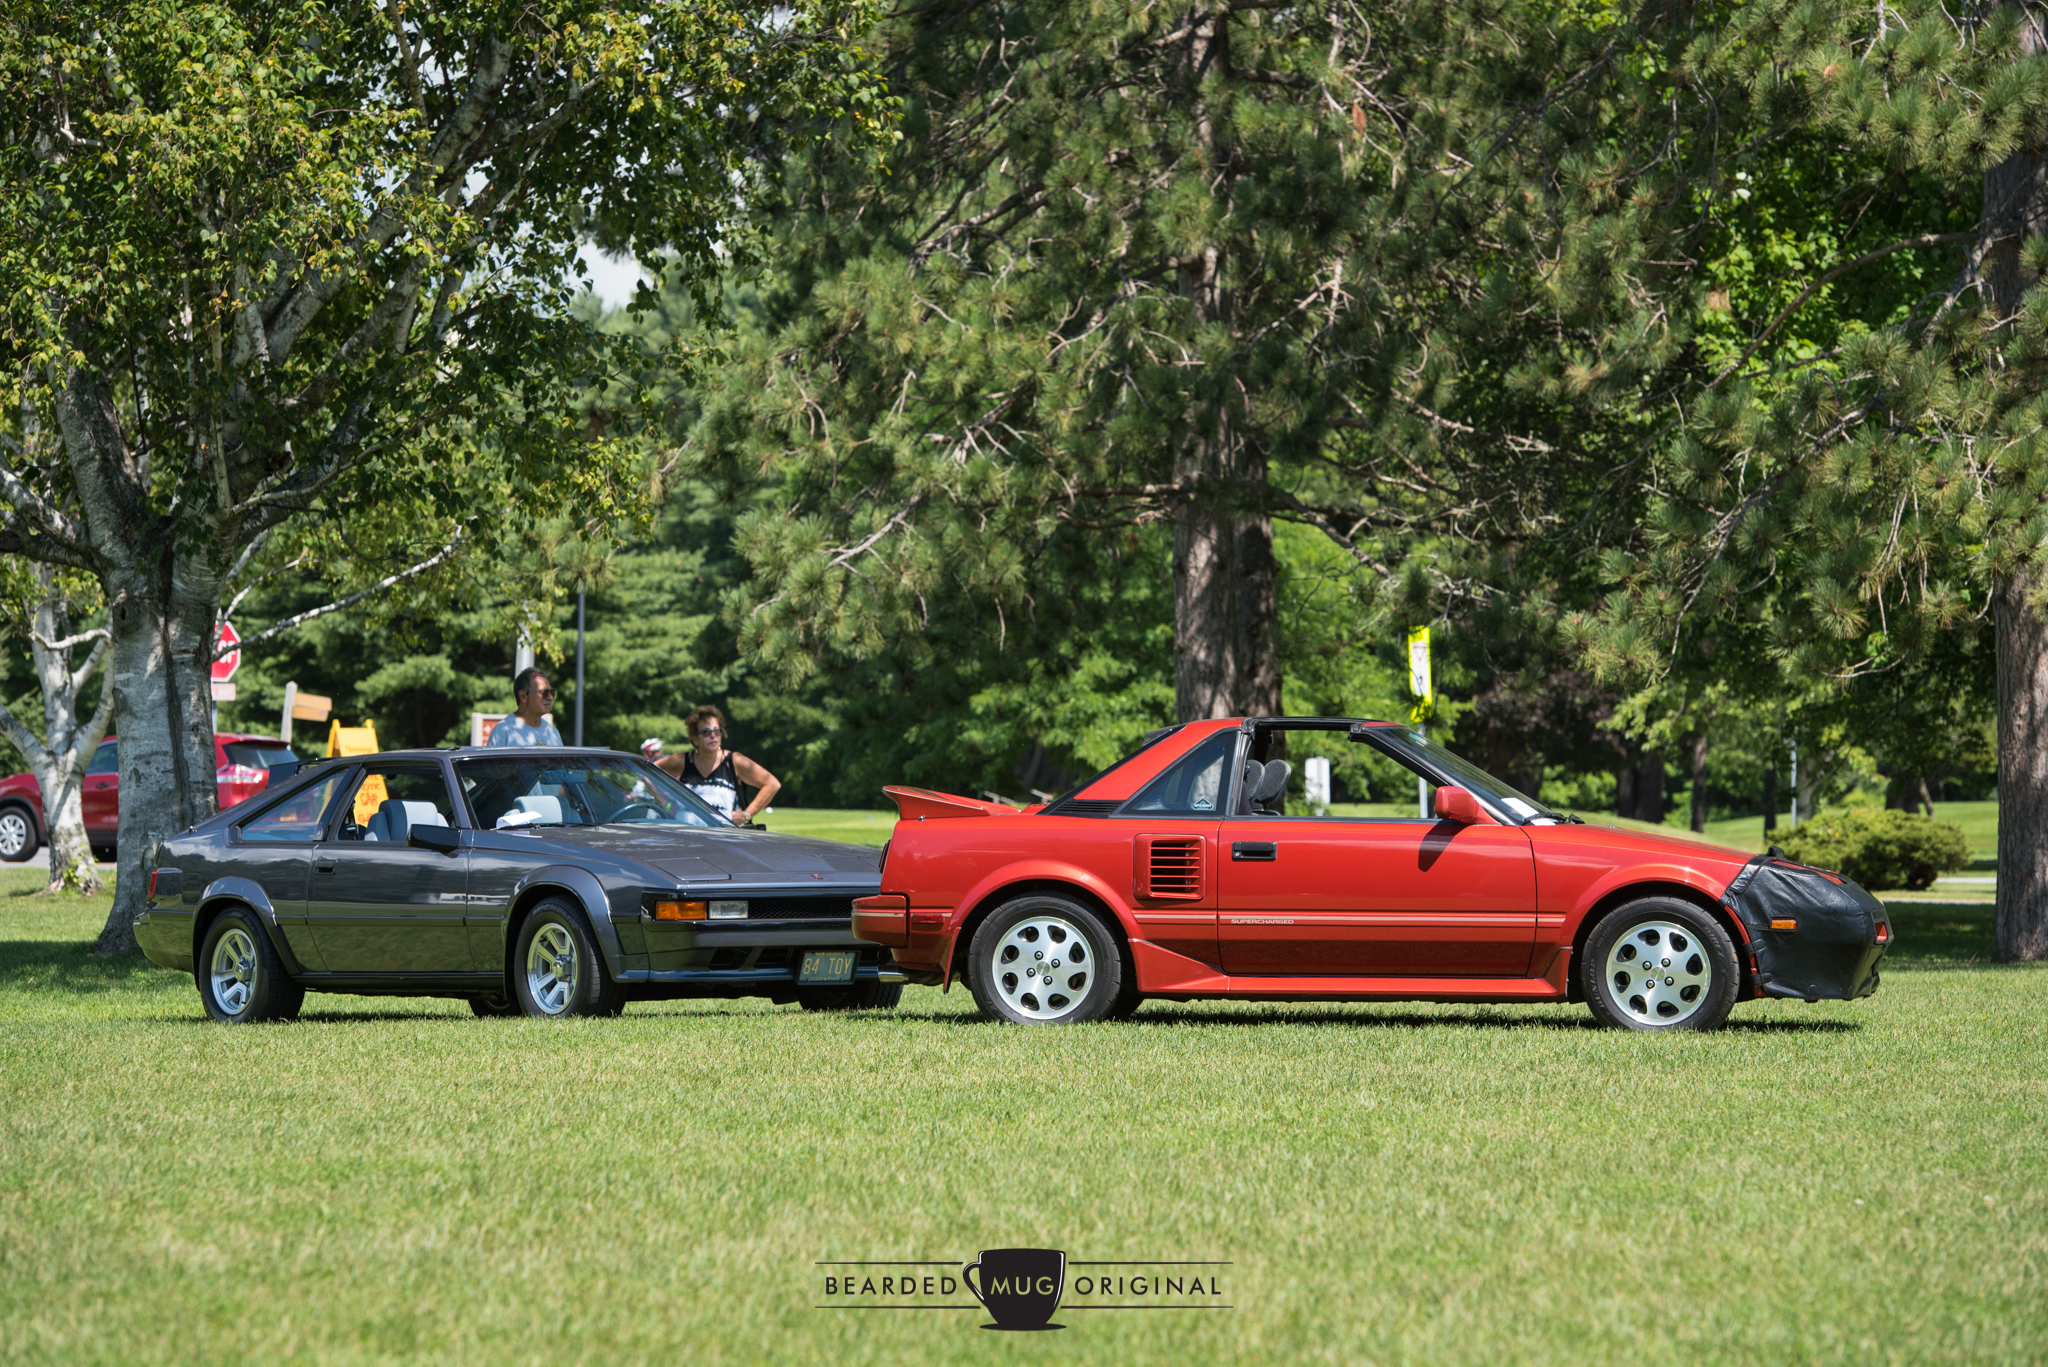 Greg's 1984 Celica Supra (above l.) and Gib's '84 were both in top-notch condition. Steve's MR2 is another local car that sees regular use, although I've only spotted it around town once.